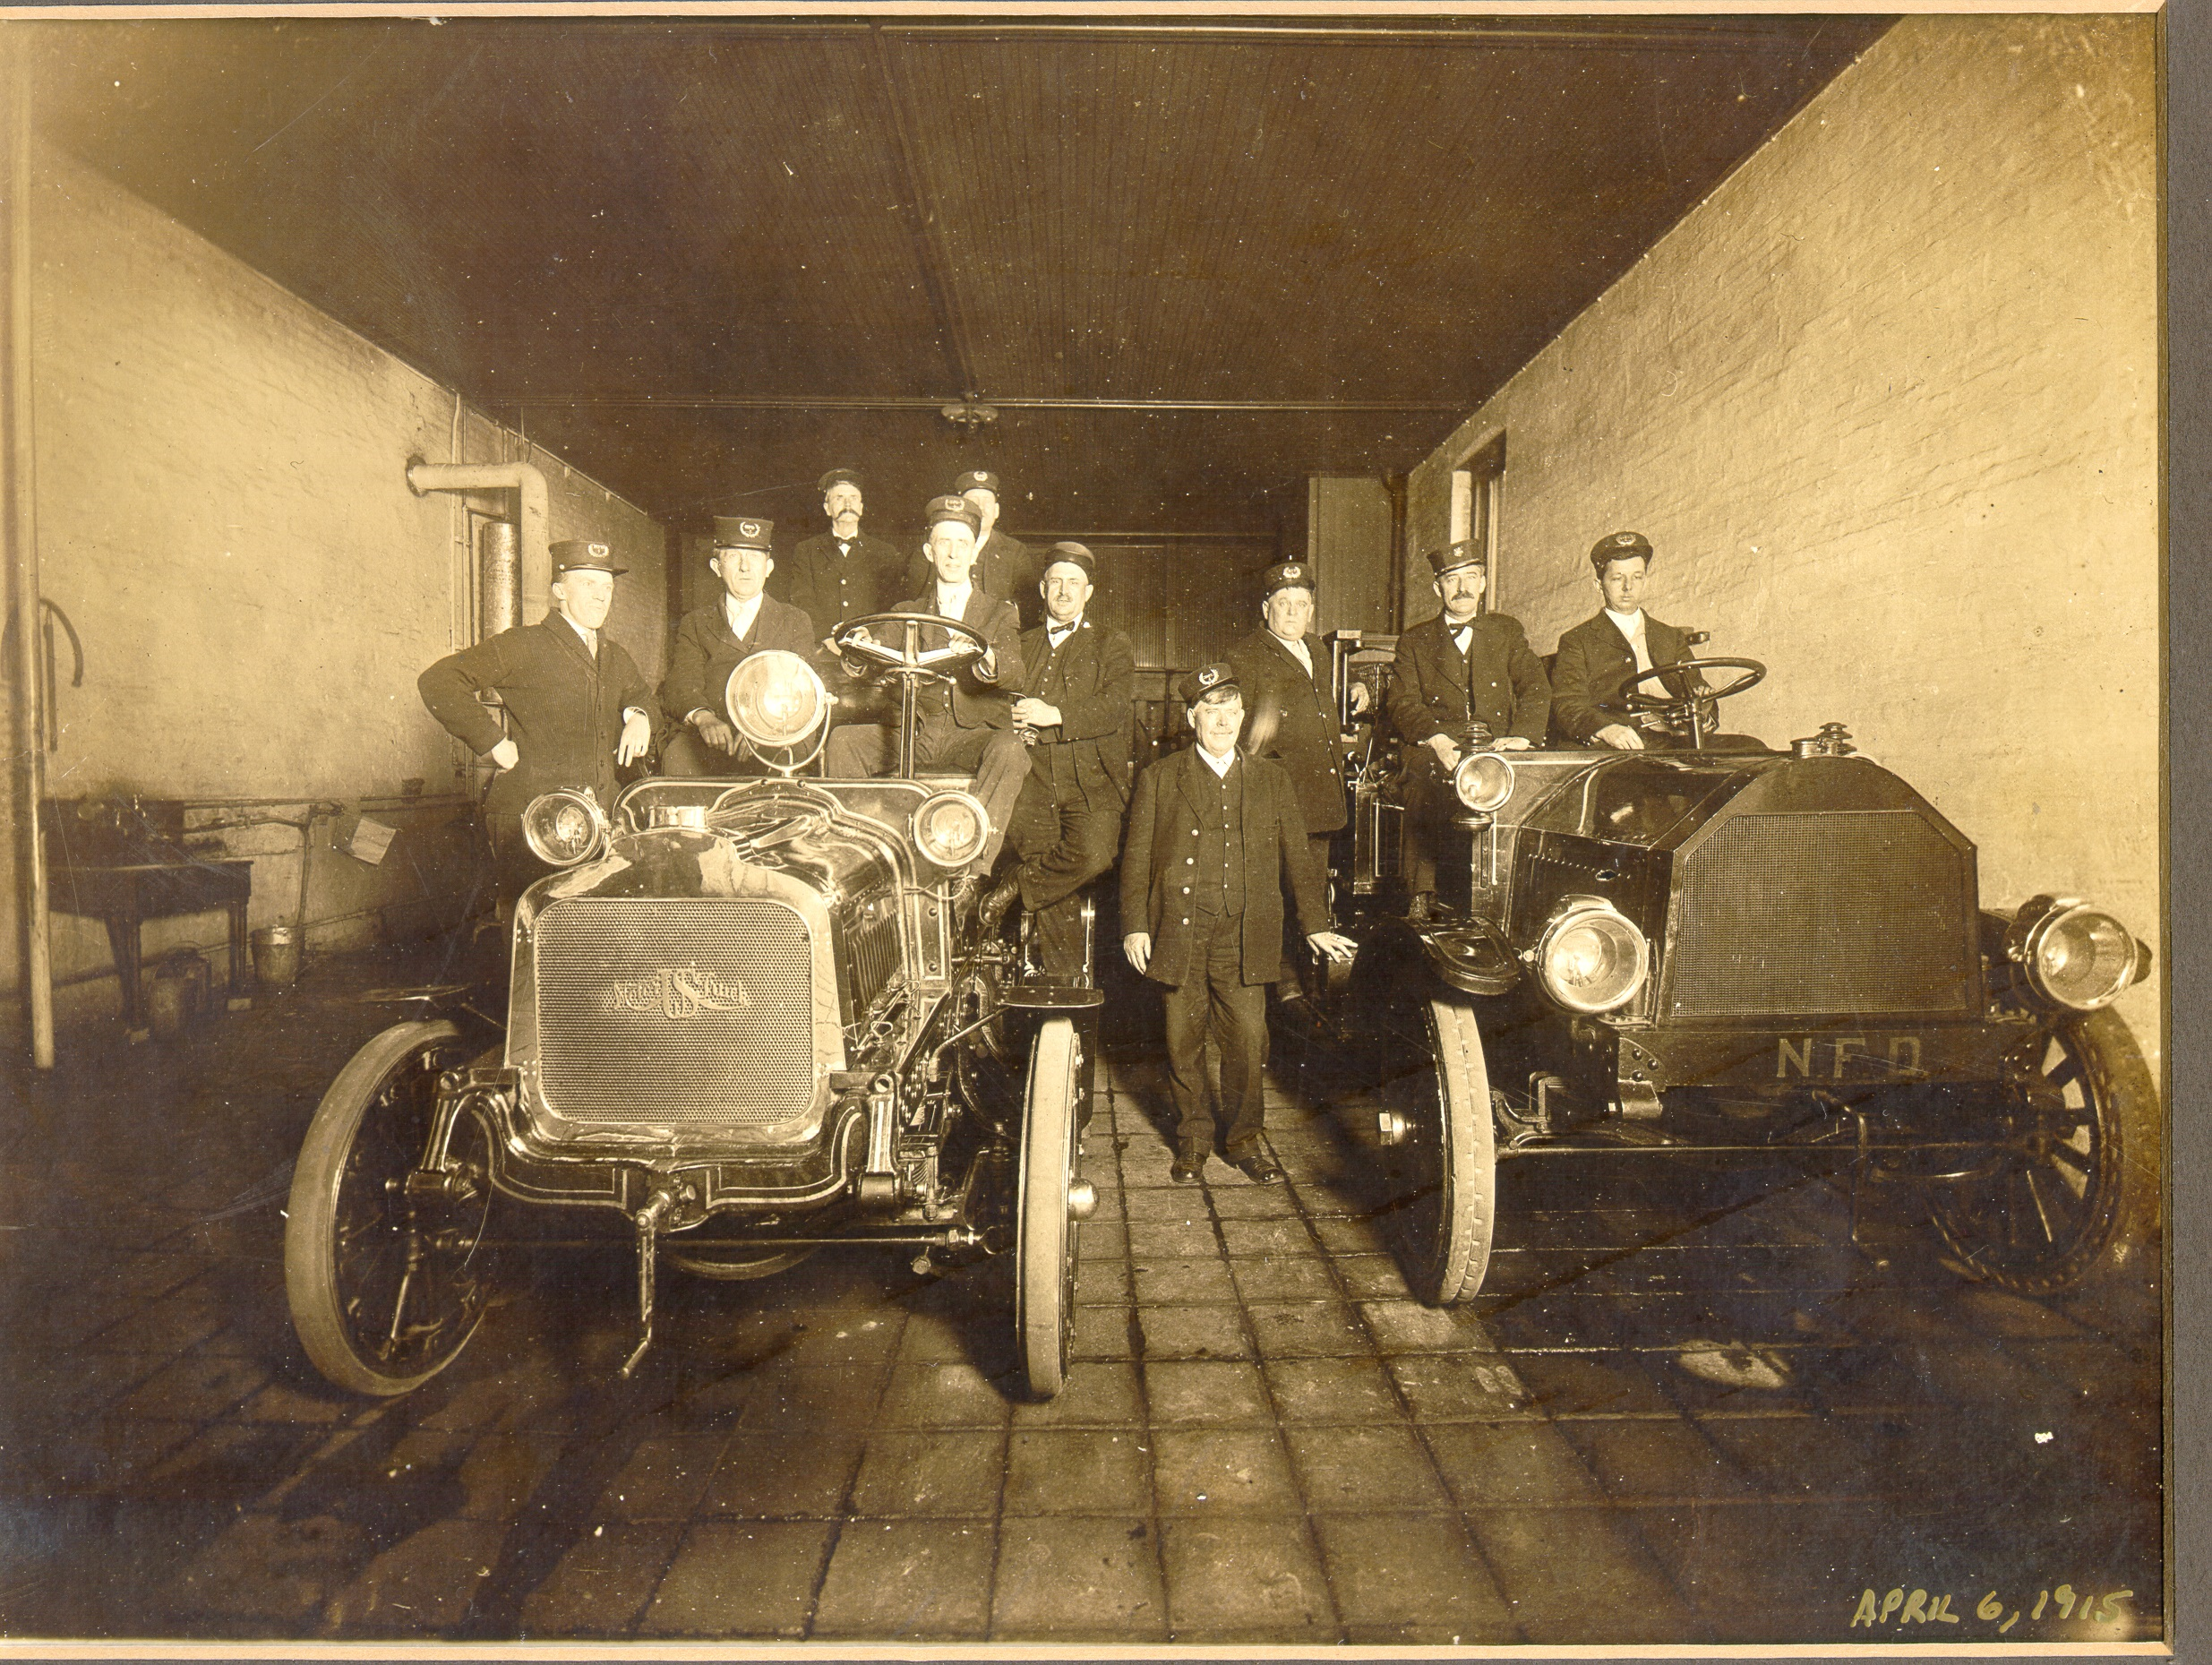 Newport Fire Early Motor Cars